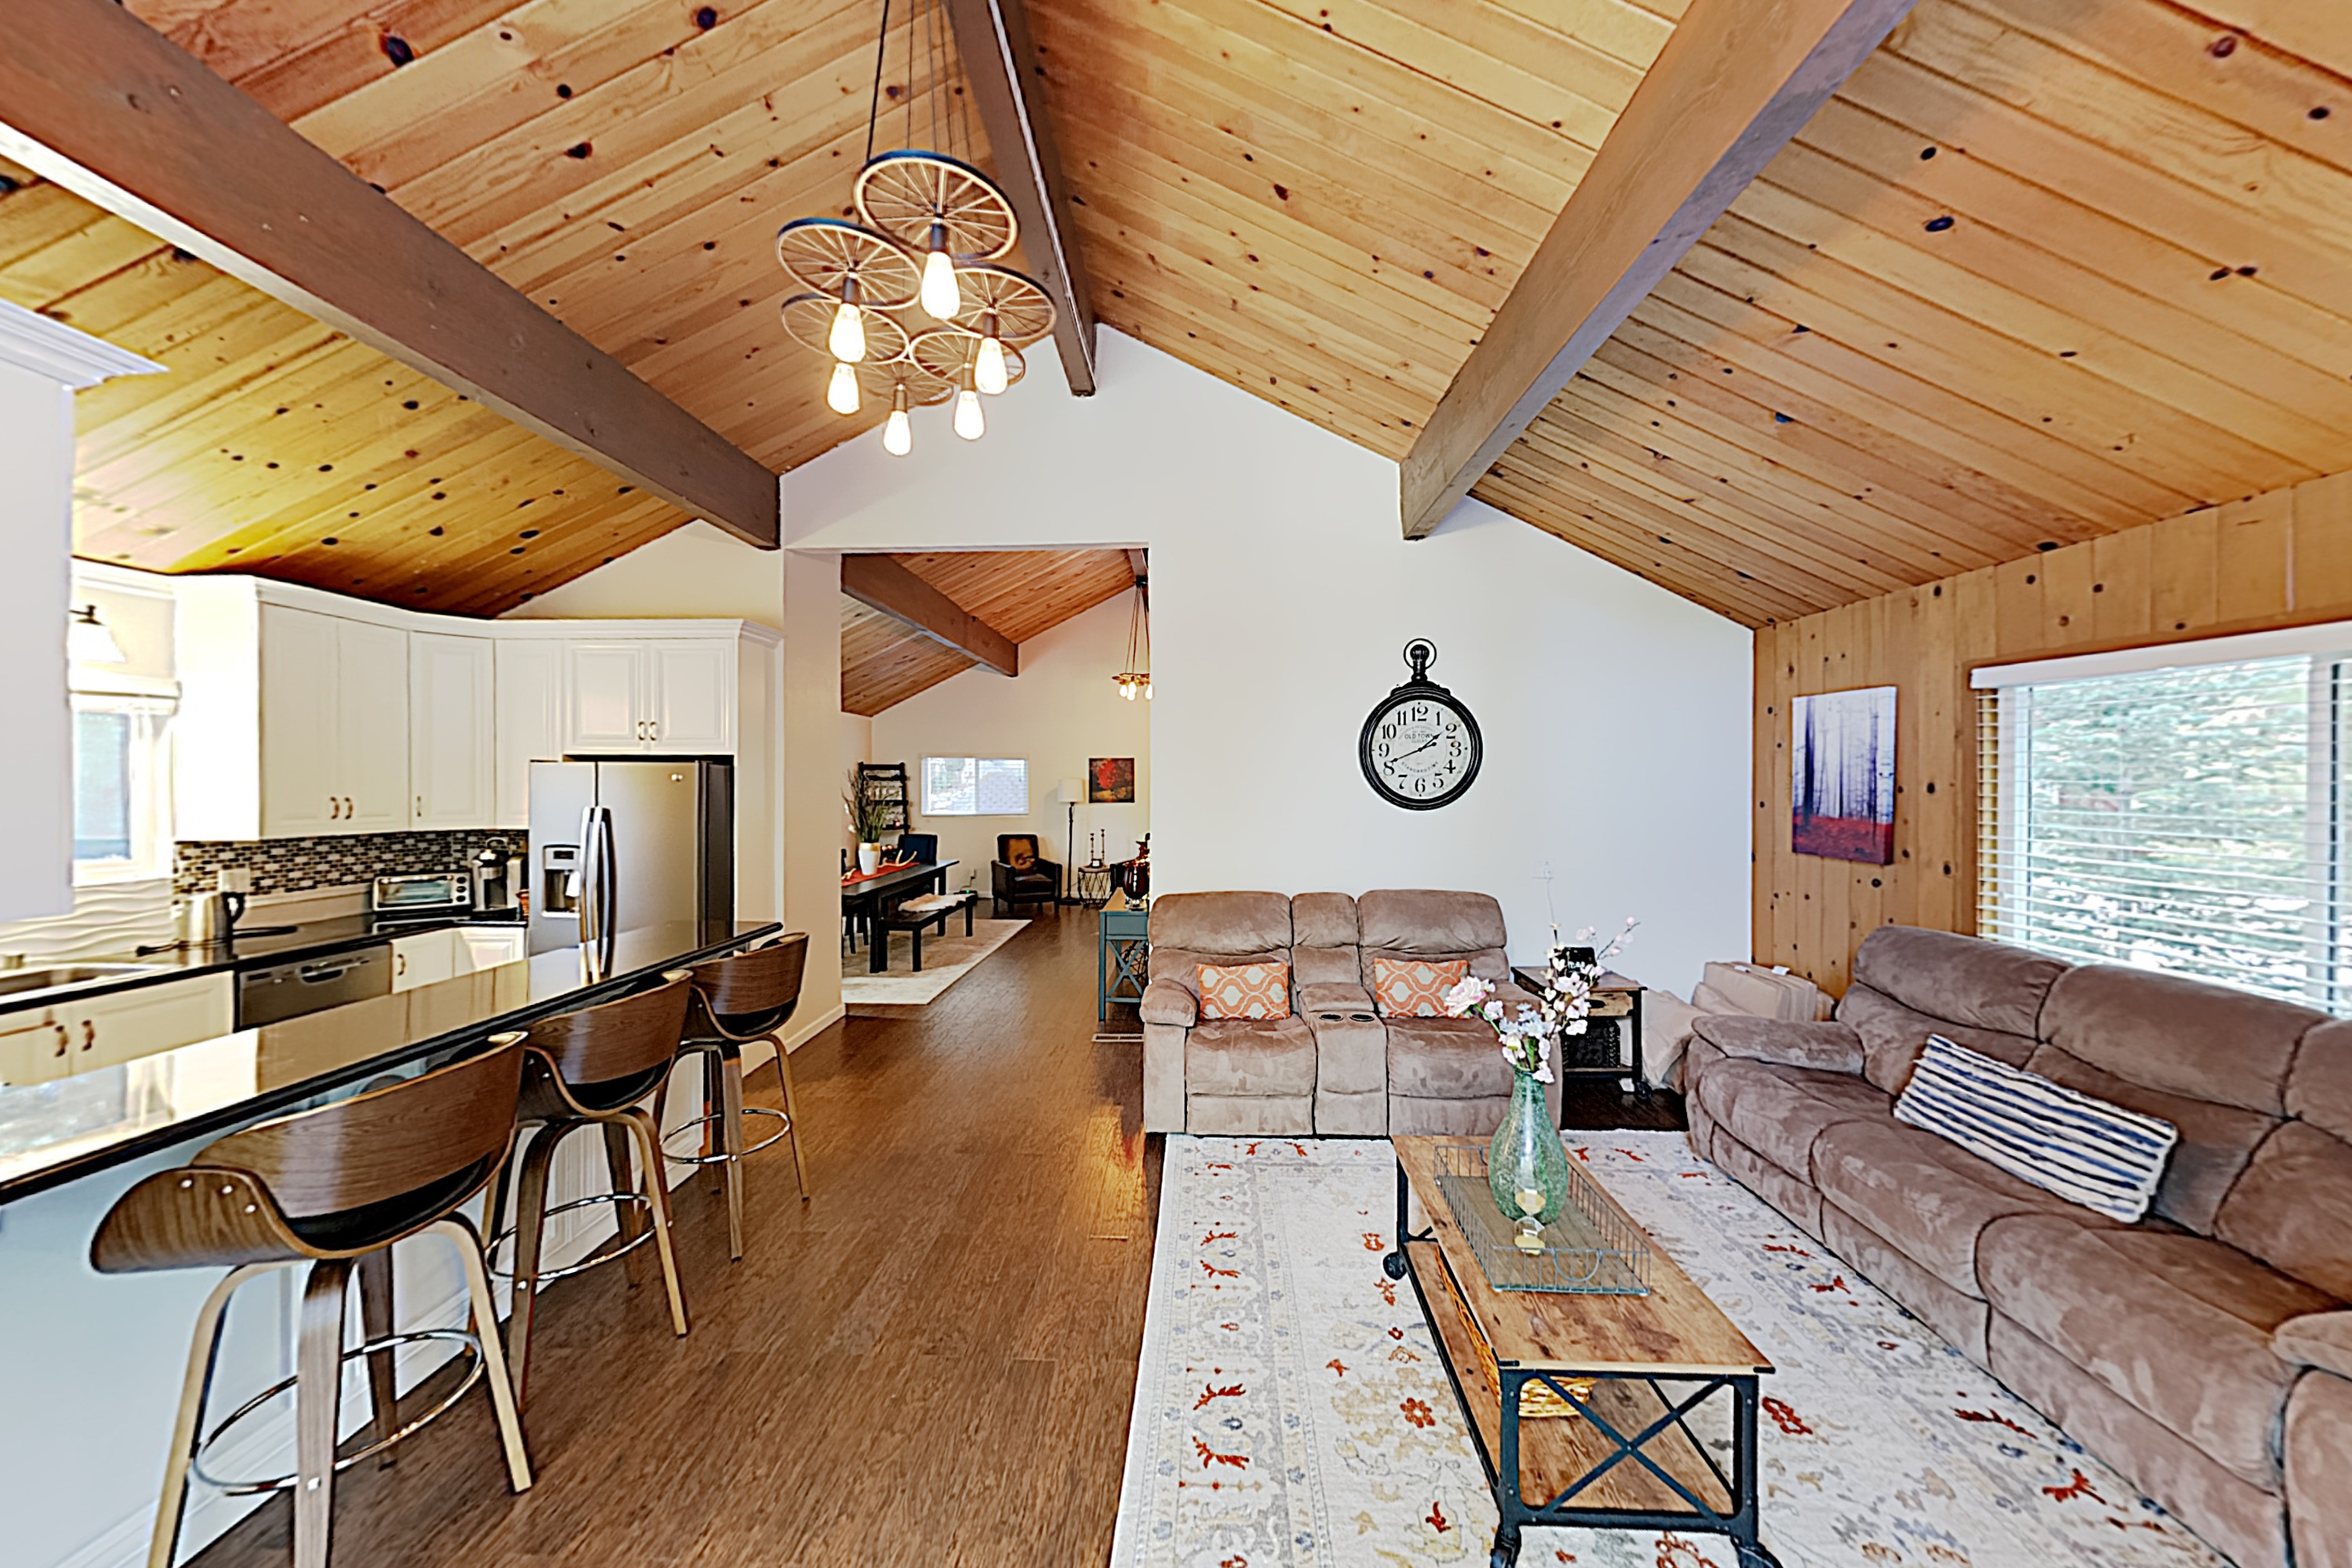 Twin Peaks CA Vacation Rental Welcome to Twin